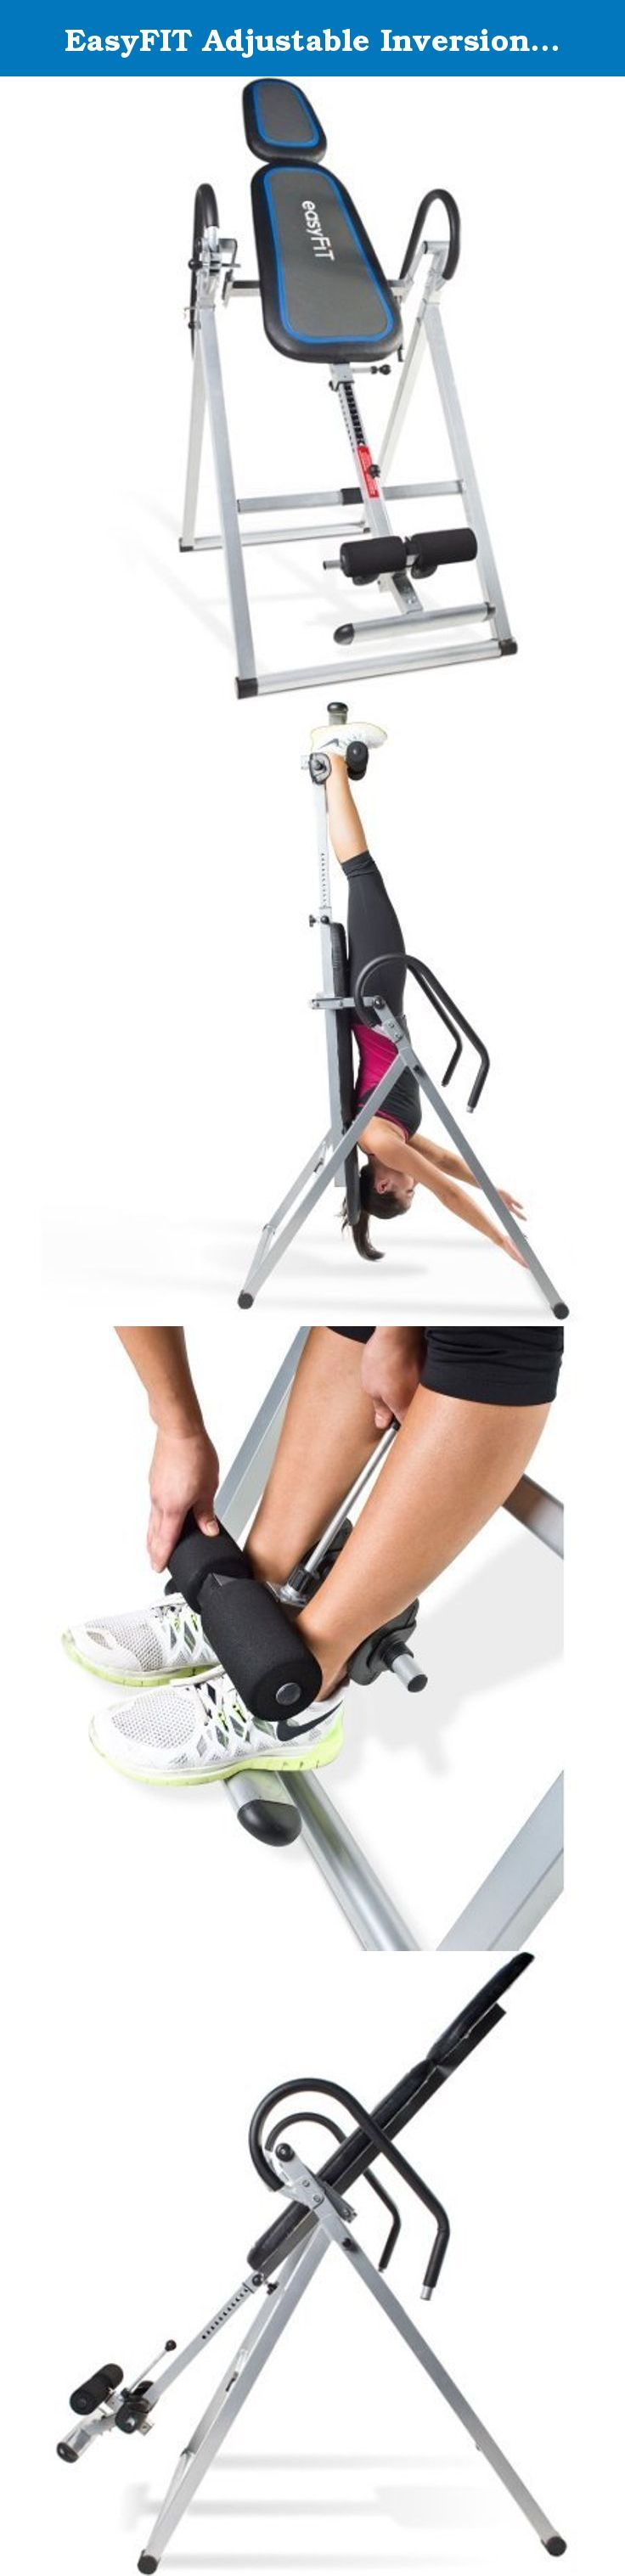 EasyFIT Adjustable Inversion Table. Inversion tables are often recommended by doctors to alleviate back pain, increase flexibility and improve joint health. Most often, you only need to use for a few minutes per day. While inverting, the force of gravity decompresses the spine - which in turn assists to realign and rehydrate discs. Other advantages of using an inversion table is the benefit of relaxing tense muscles, reduction in nerve pressure throughout the back, neck and hips…